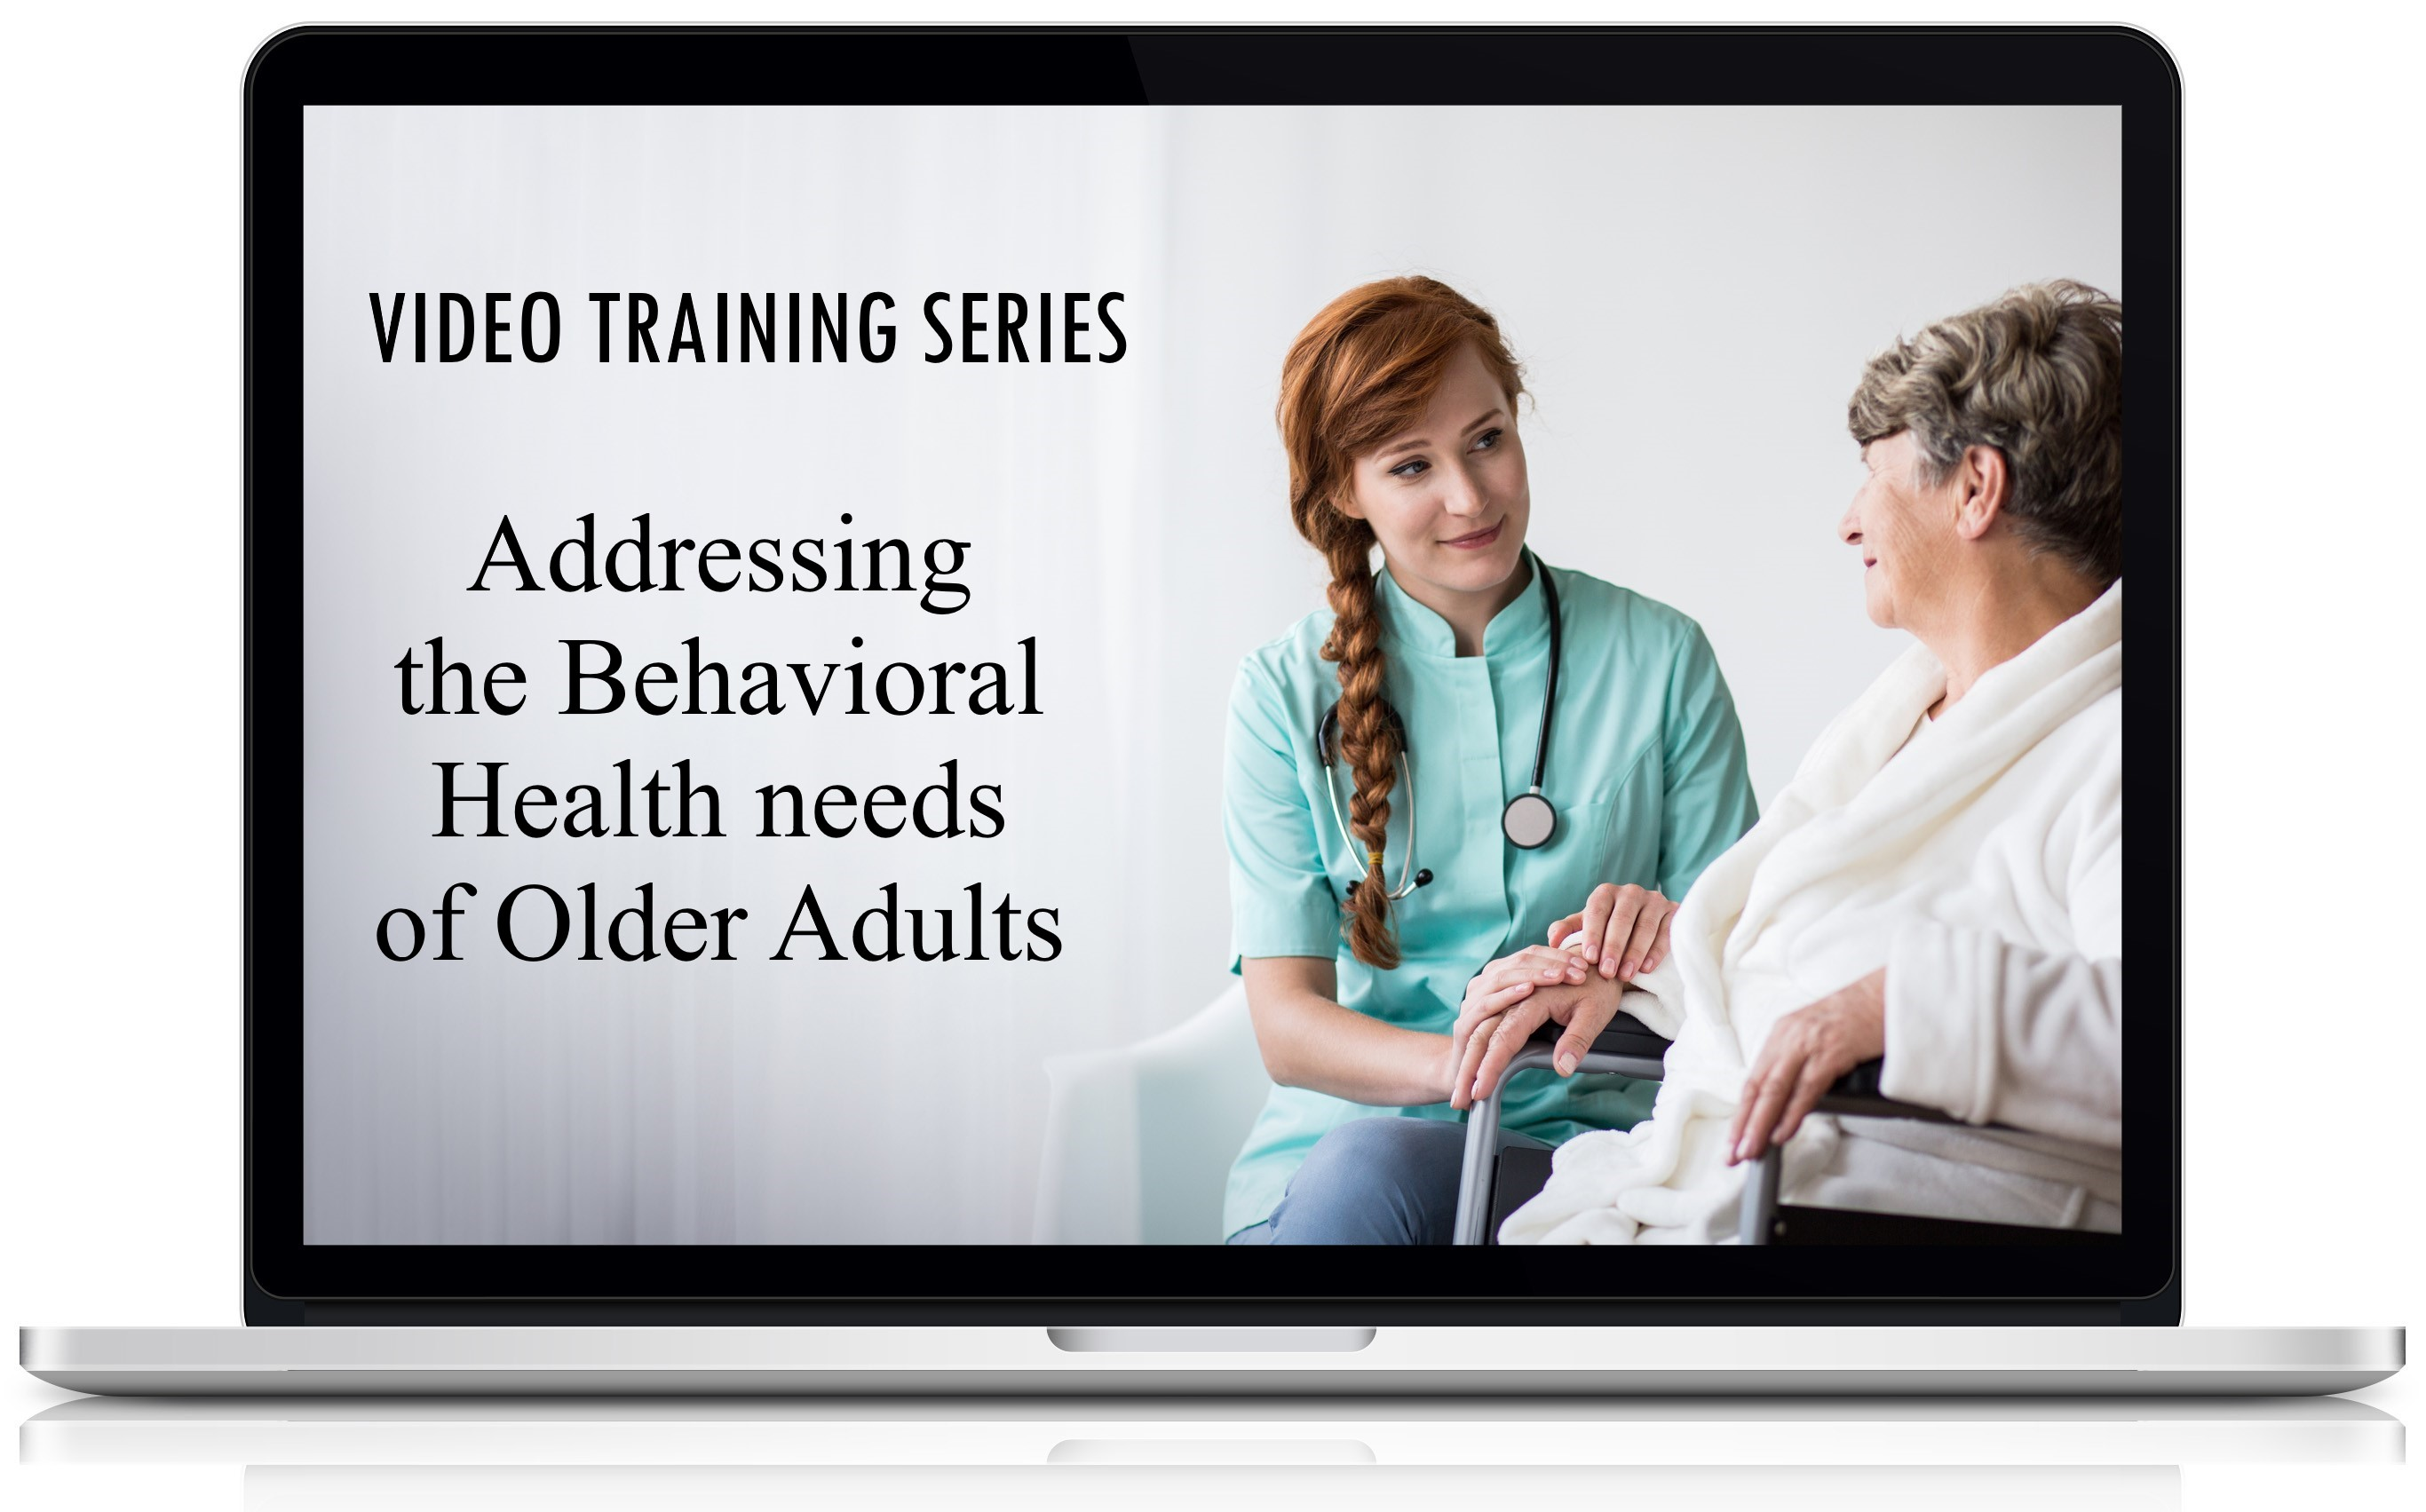 Video Training Series: Addressing the Behavioral Health needs of Older Adults